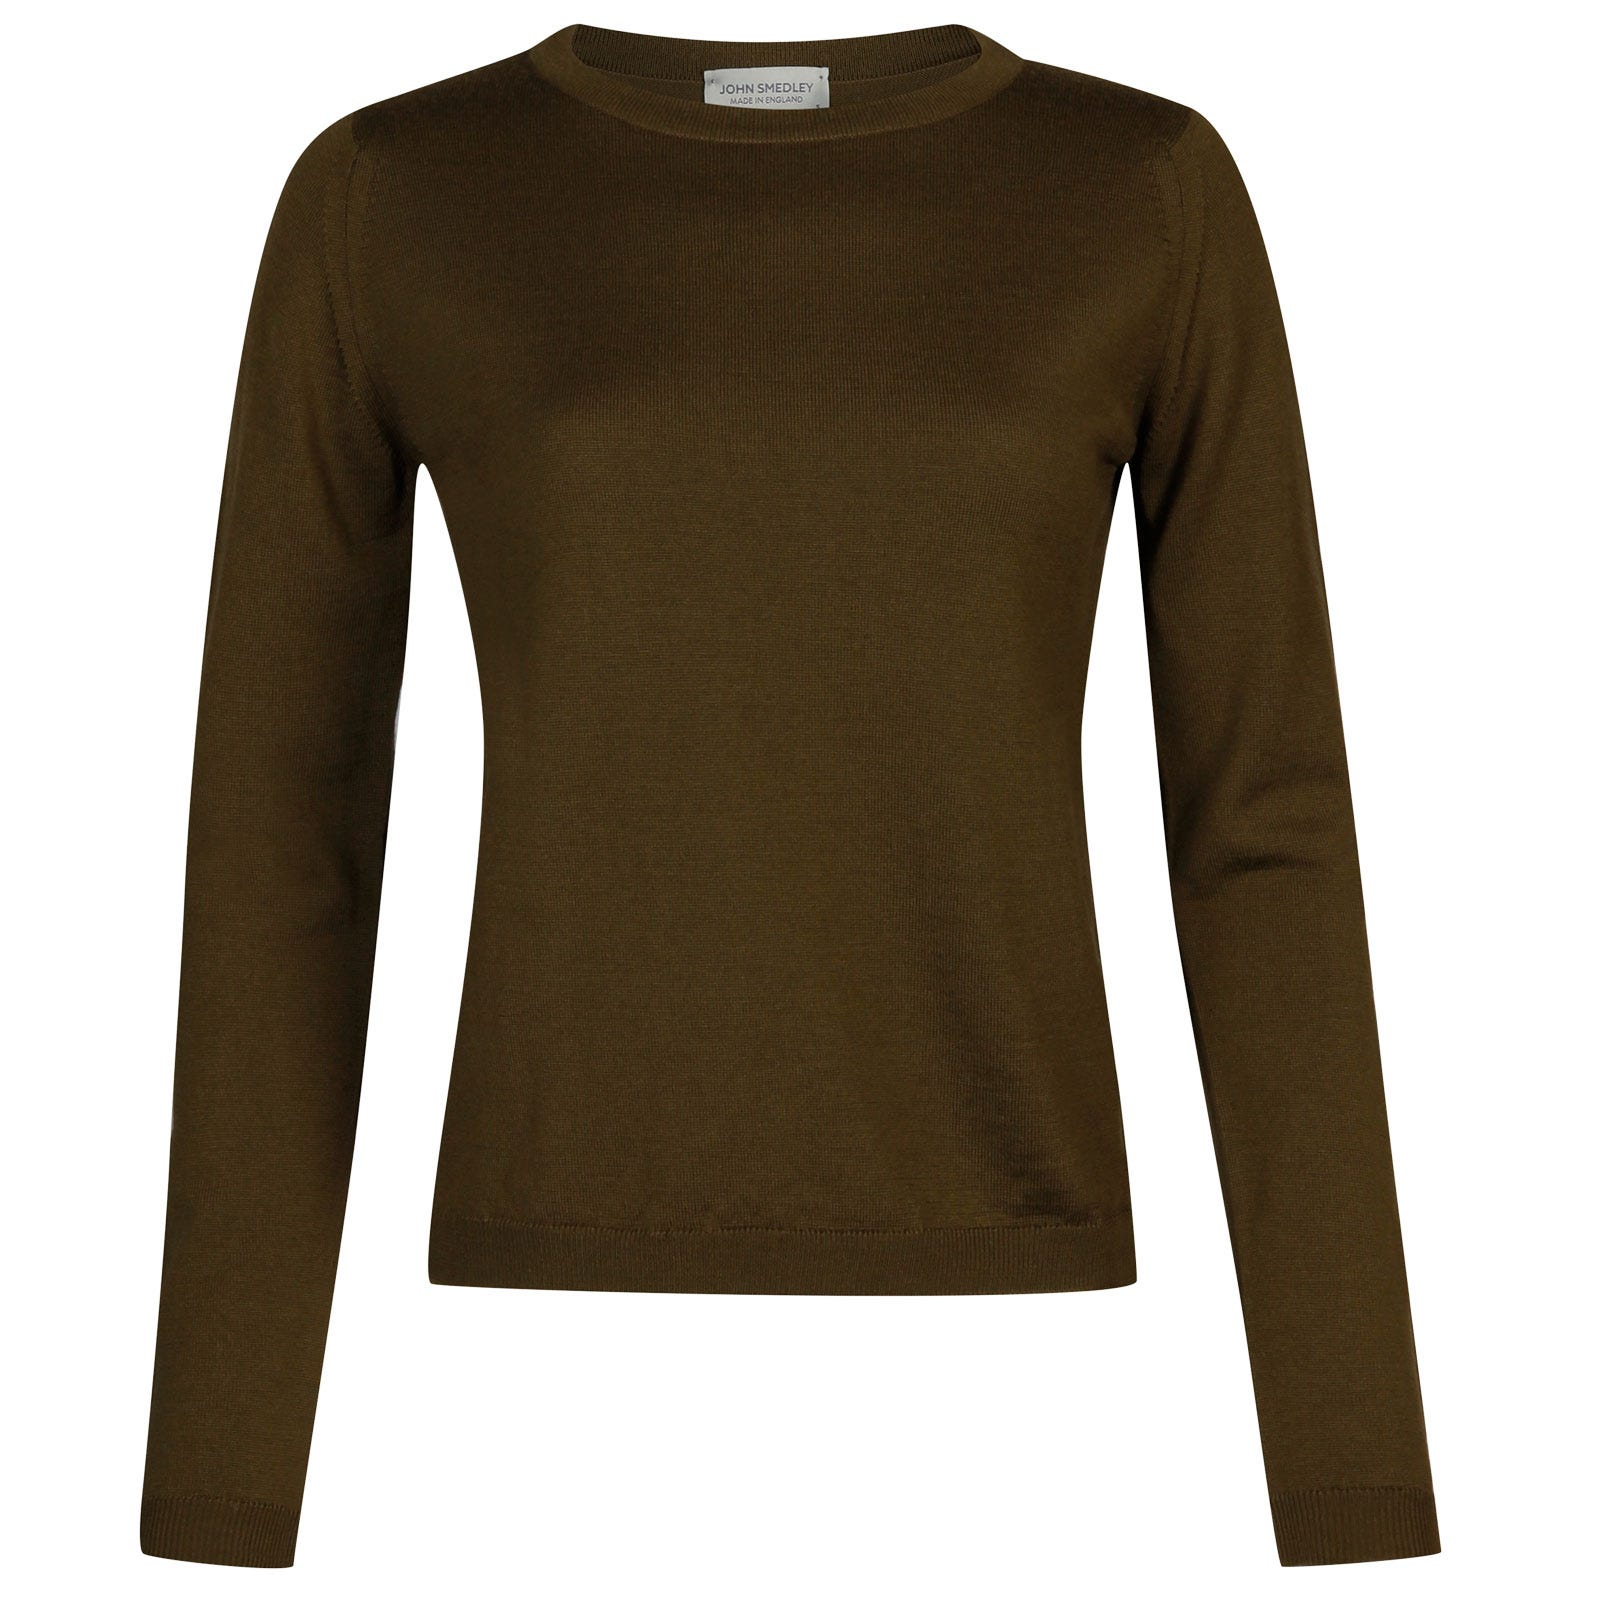 John Smedley Edmee Merino Wool Sweater in Kielder Green-XL